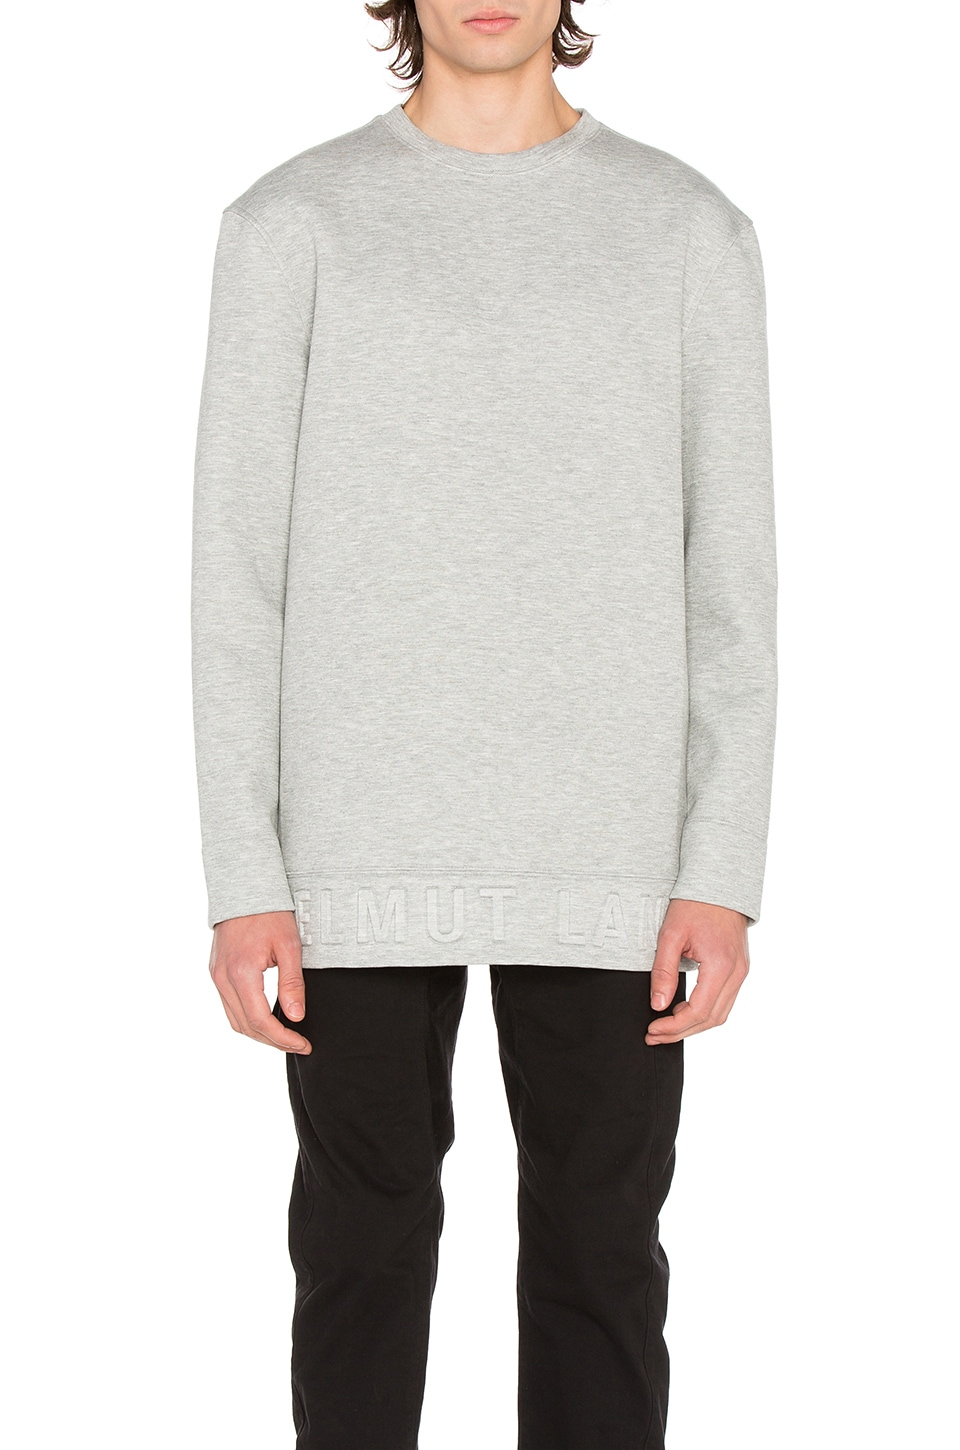 Photo of Box Fit 3D L/S Pullover by Helmut Lang men clothes